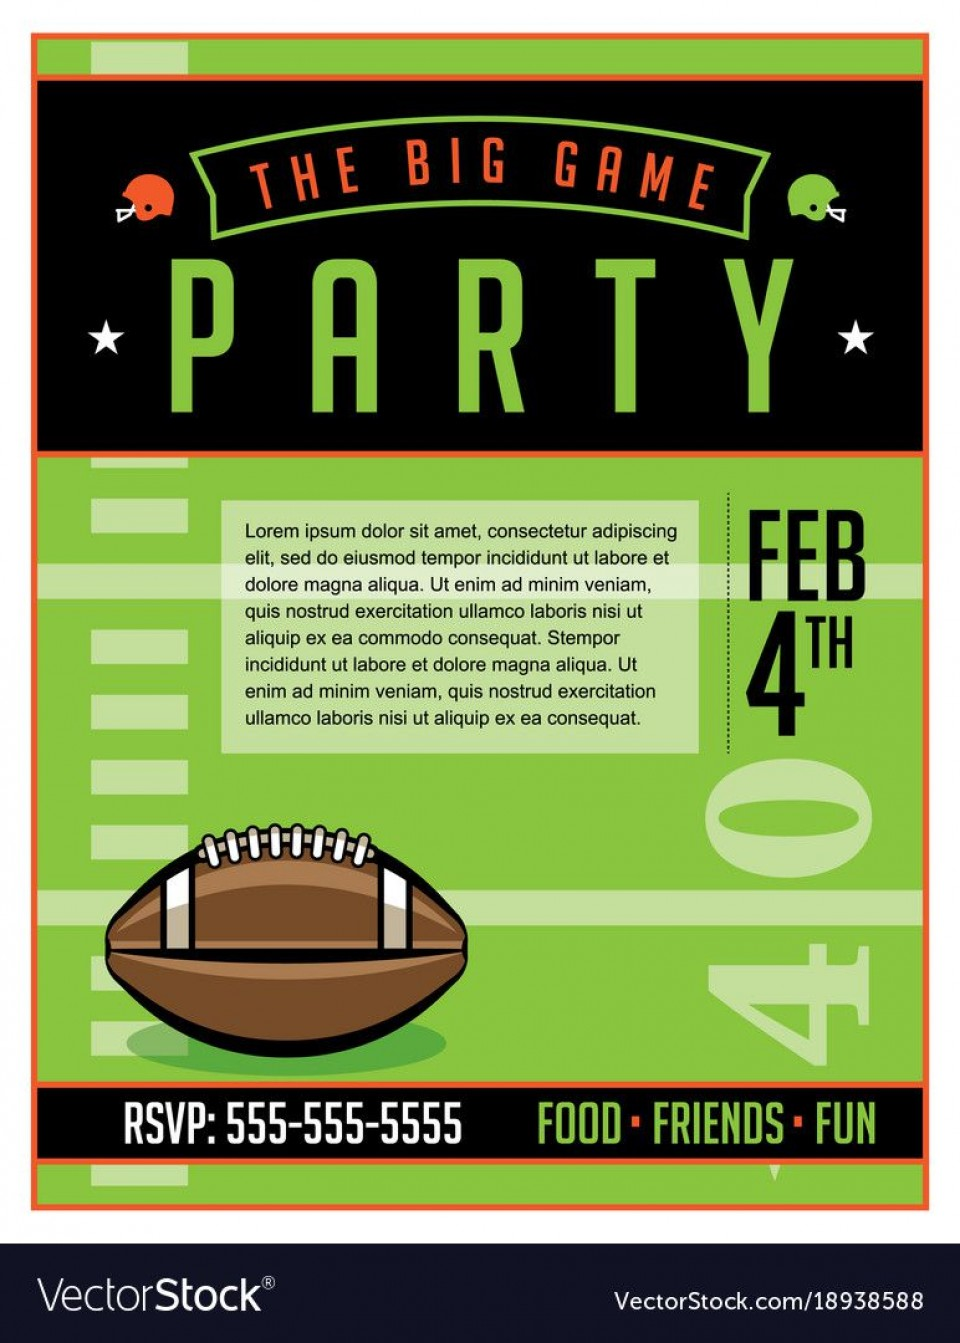 002 Surprising Free Tailgate Party Flyer Template Download Photo 960